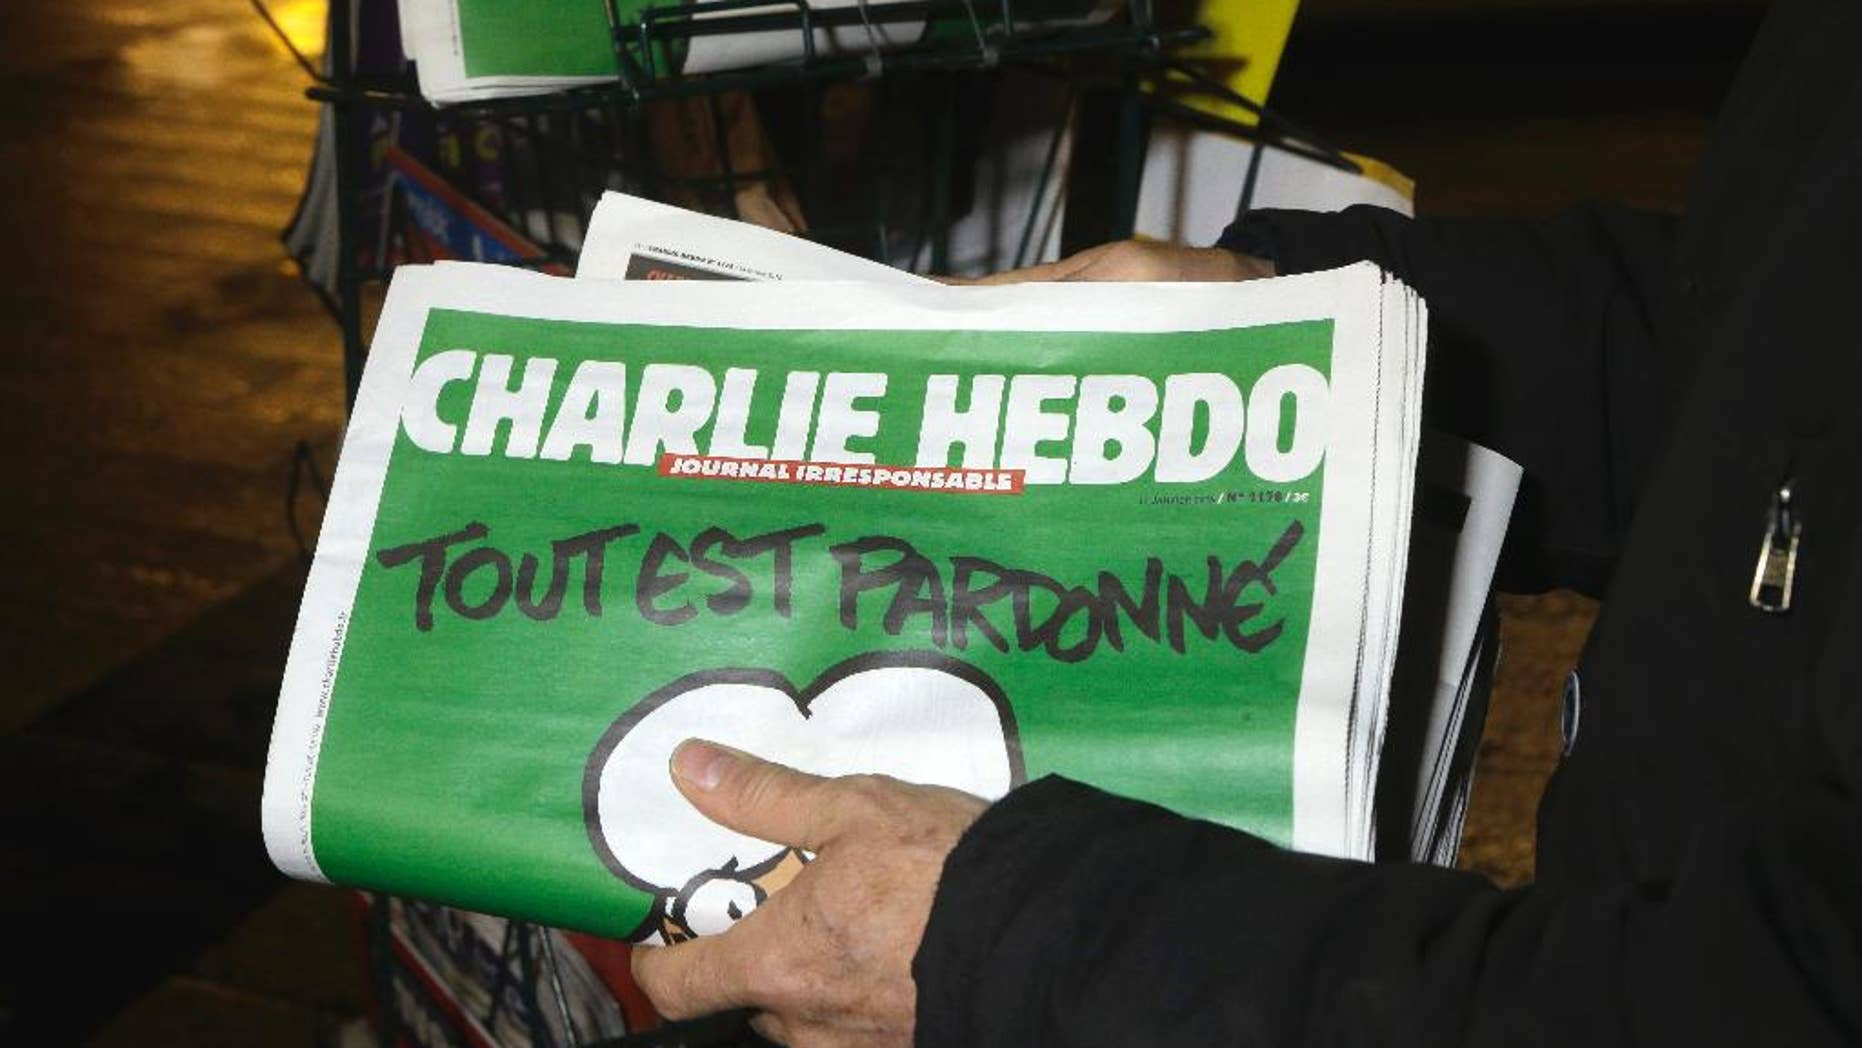 FILE - In this Wednesday, Jan. 14, 2015, file photo, a seller of newspapers stocks several Charlie Hebdo newspapers at a newsstand in Nice, France. The French satirical newspaper Charlie Hebdo will publish a German version in the country that has given the best reception to the weekly paper outside France since the attacks that wiped out the Paris editorial staff in January 2015. (AP Photo/ Lionel Cironneau, File)